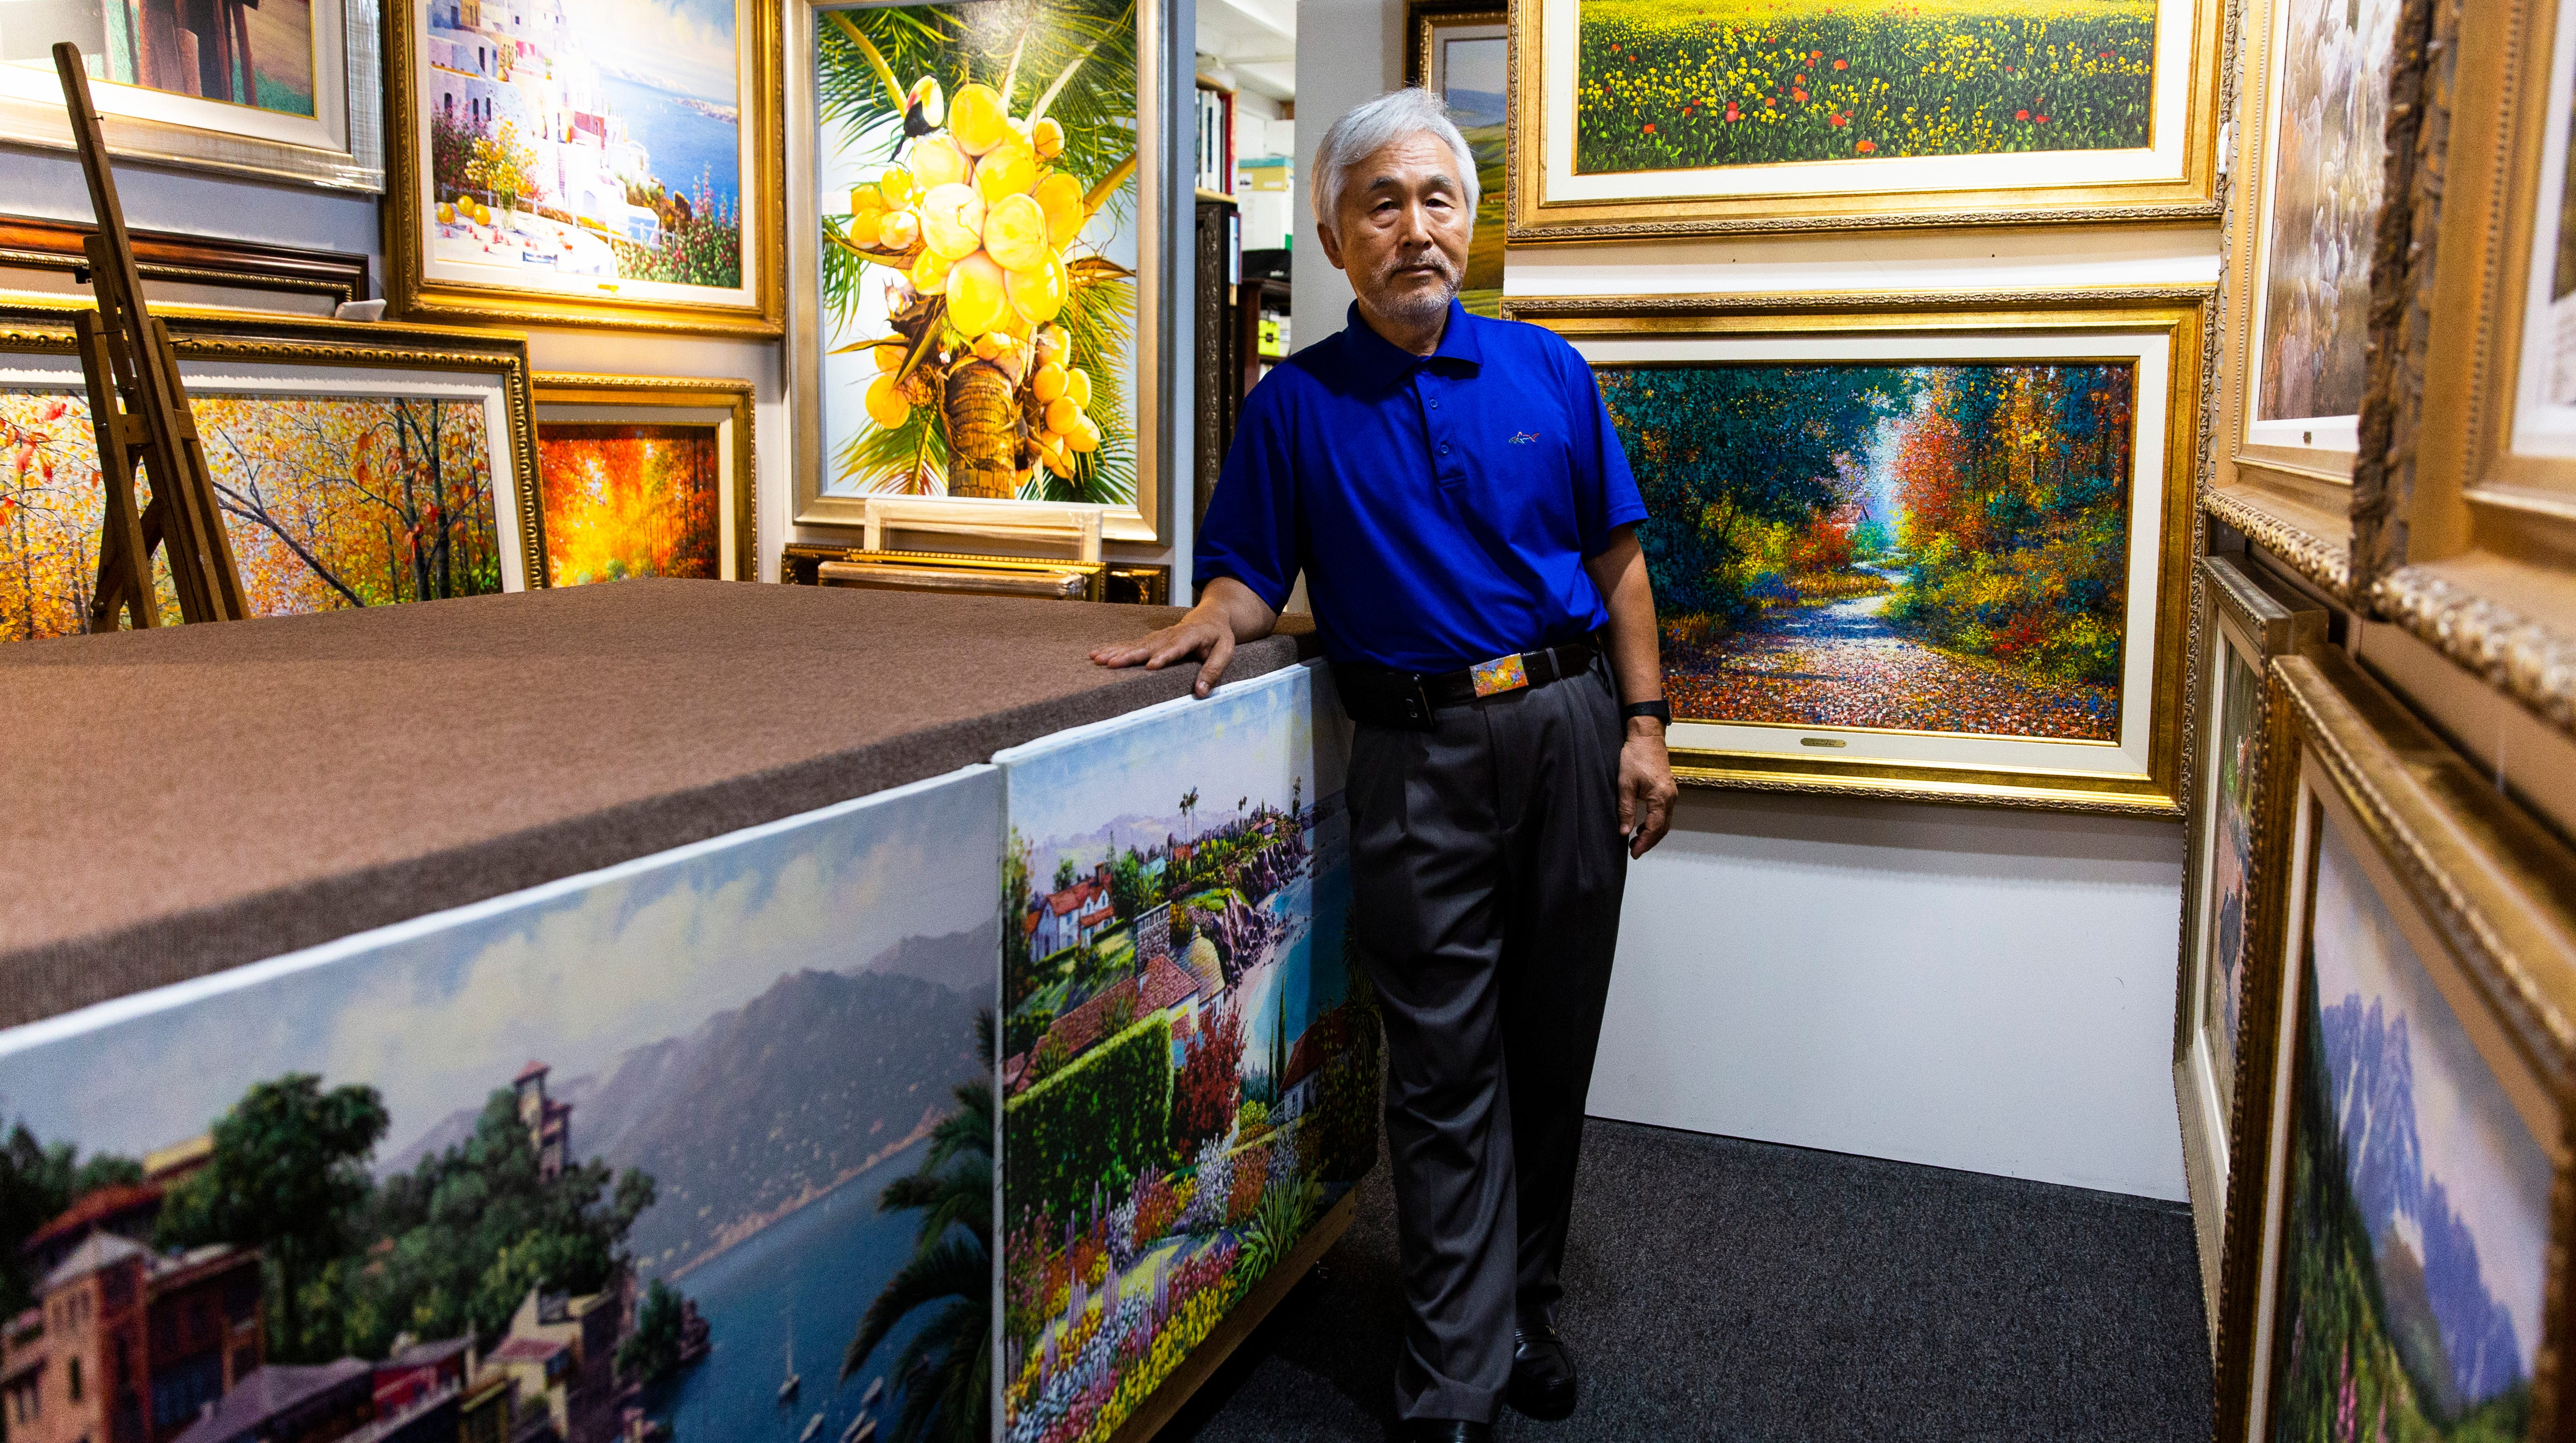 Nomadic Naples artist now home to stay after 38 years on the road